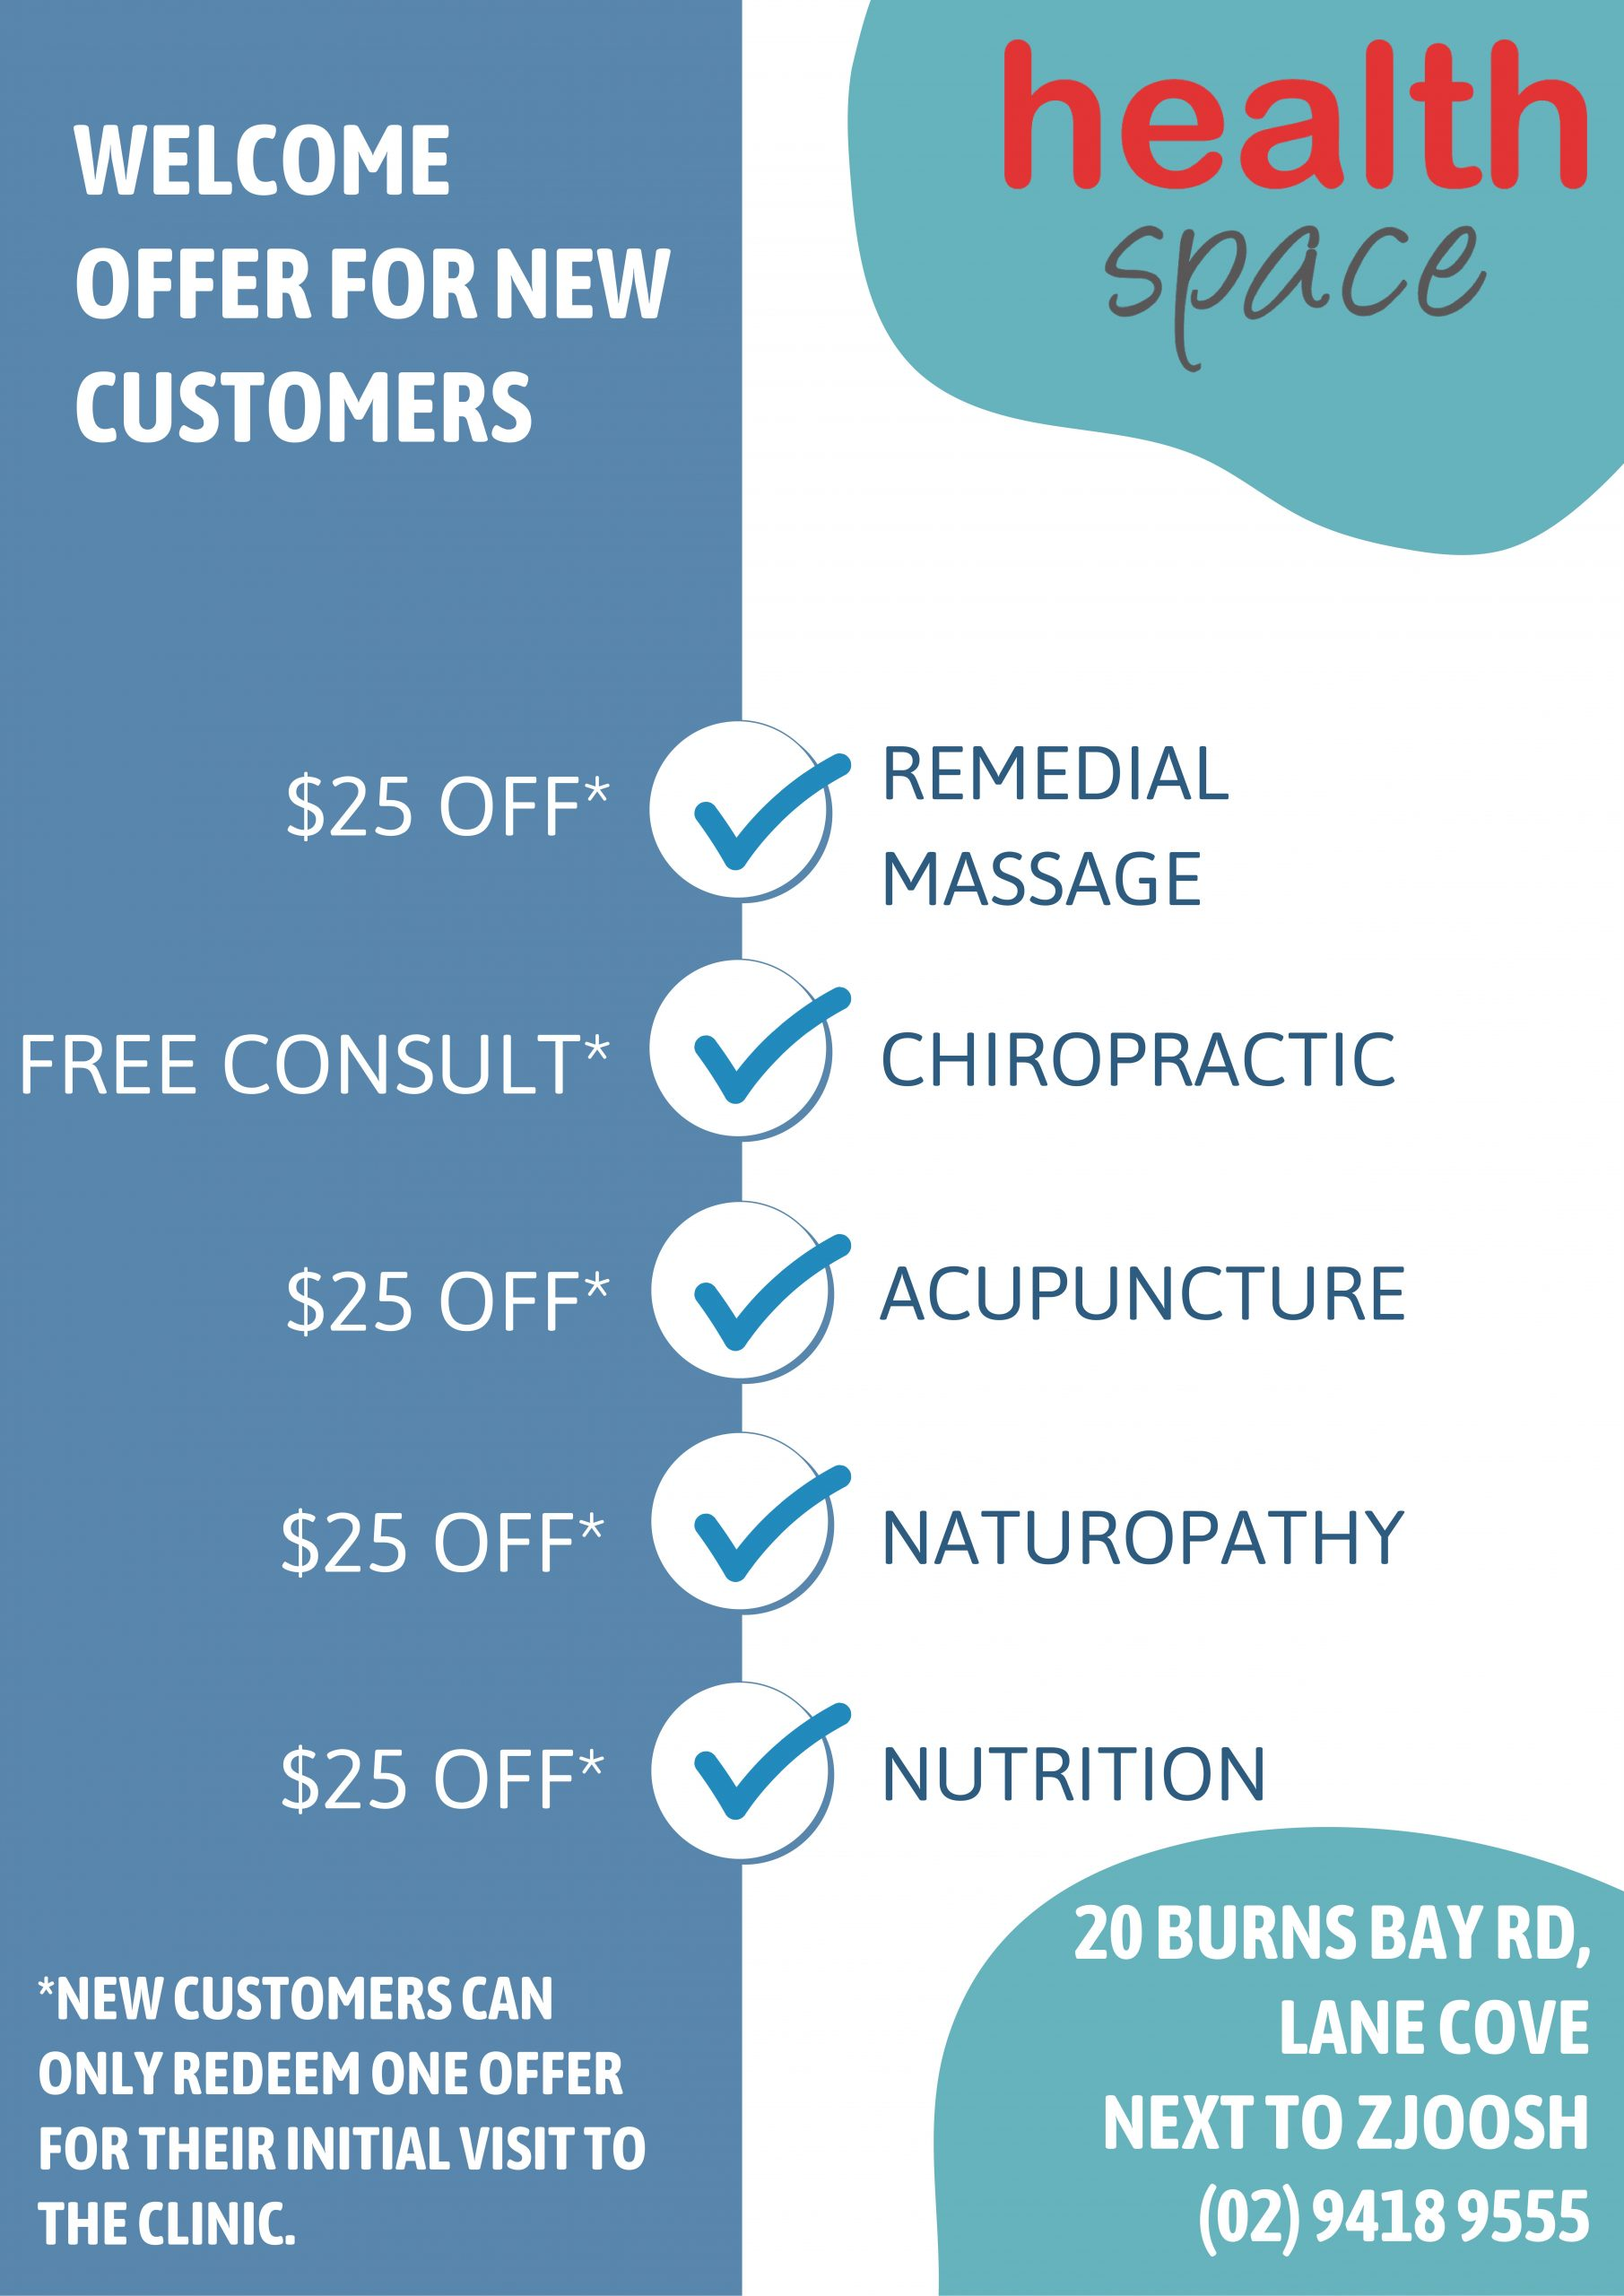 Current Lane Cove Promotion! - Health Space Clinics